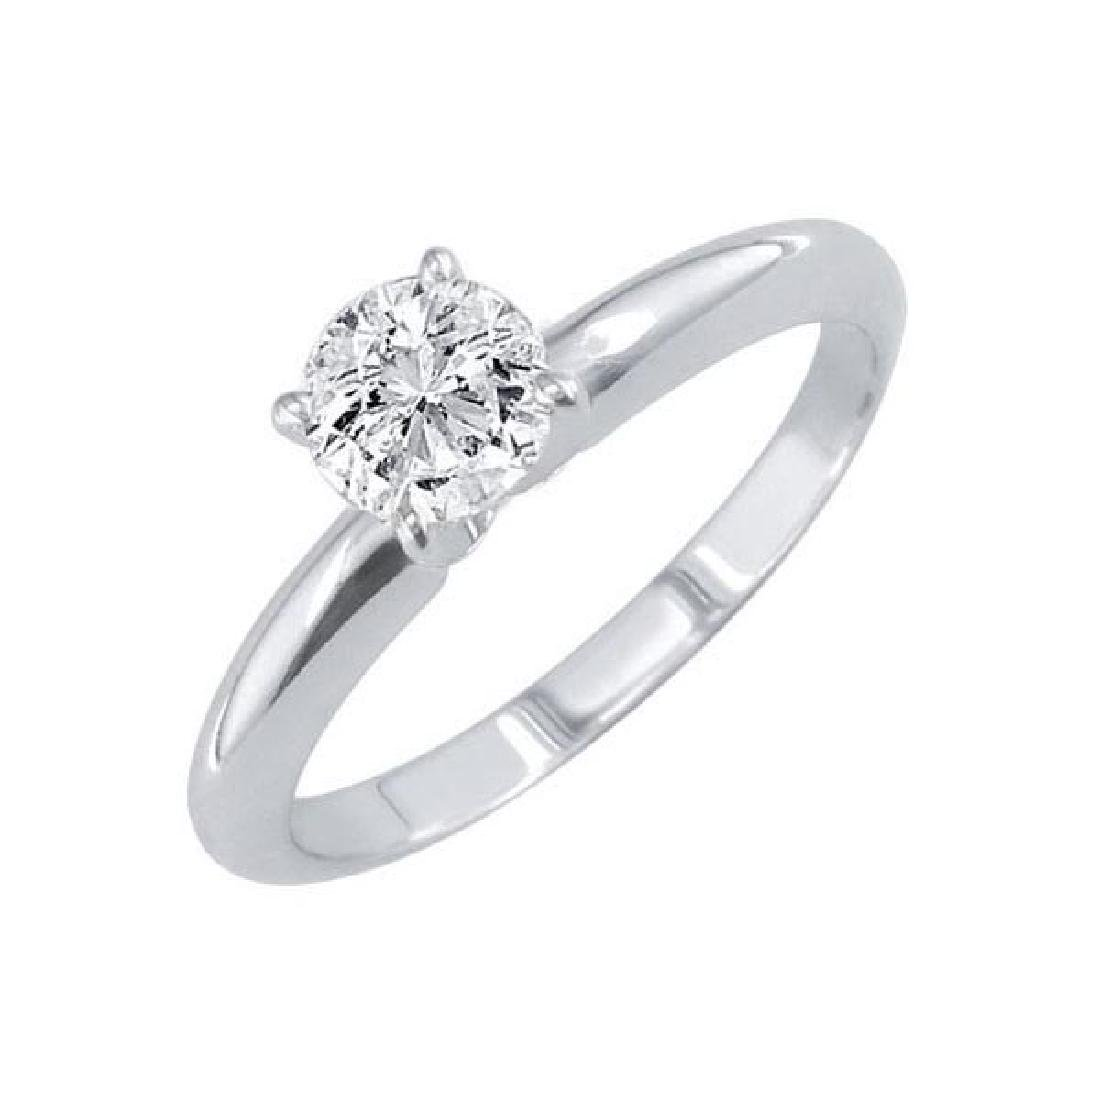 Certified 0.7 CTW Round Diamond Solitaire 14k Ring D/I2